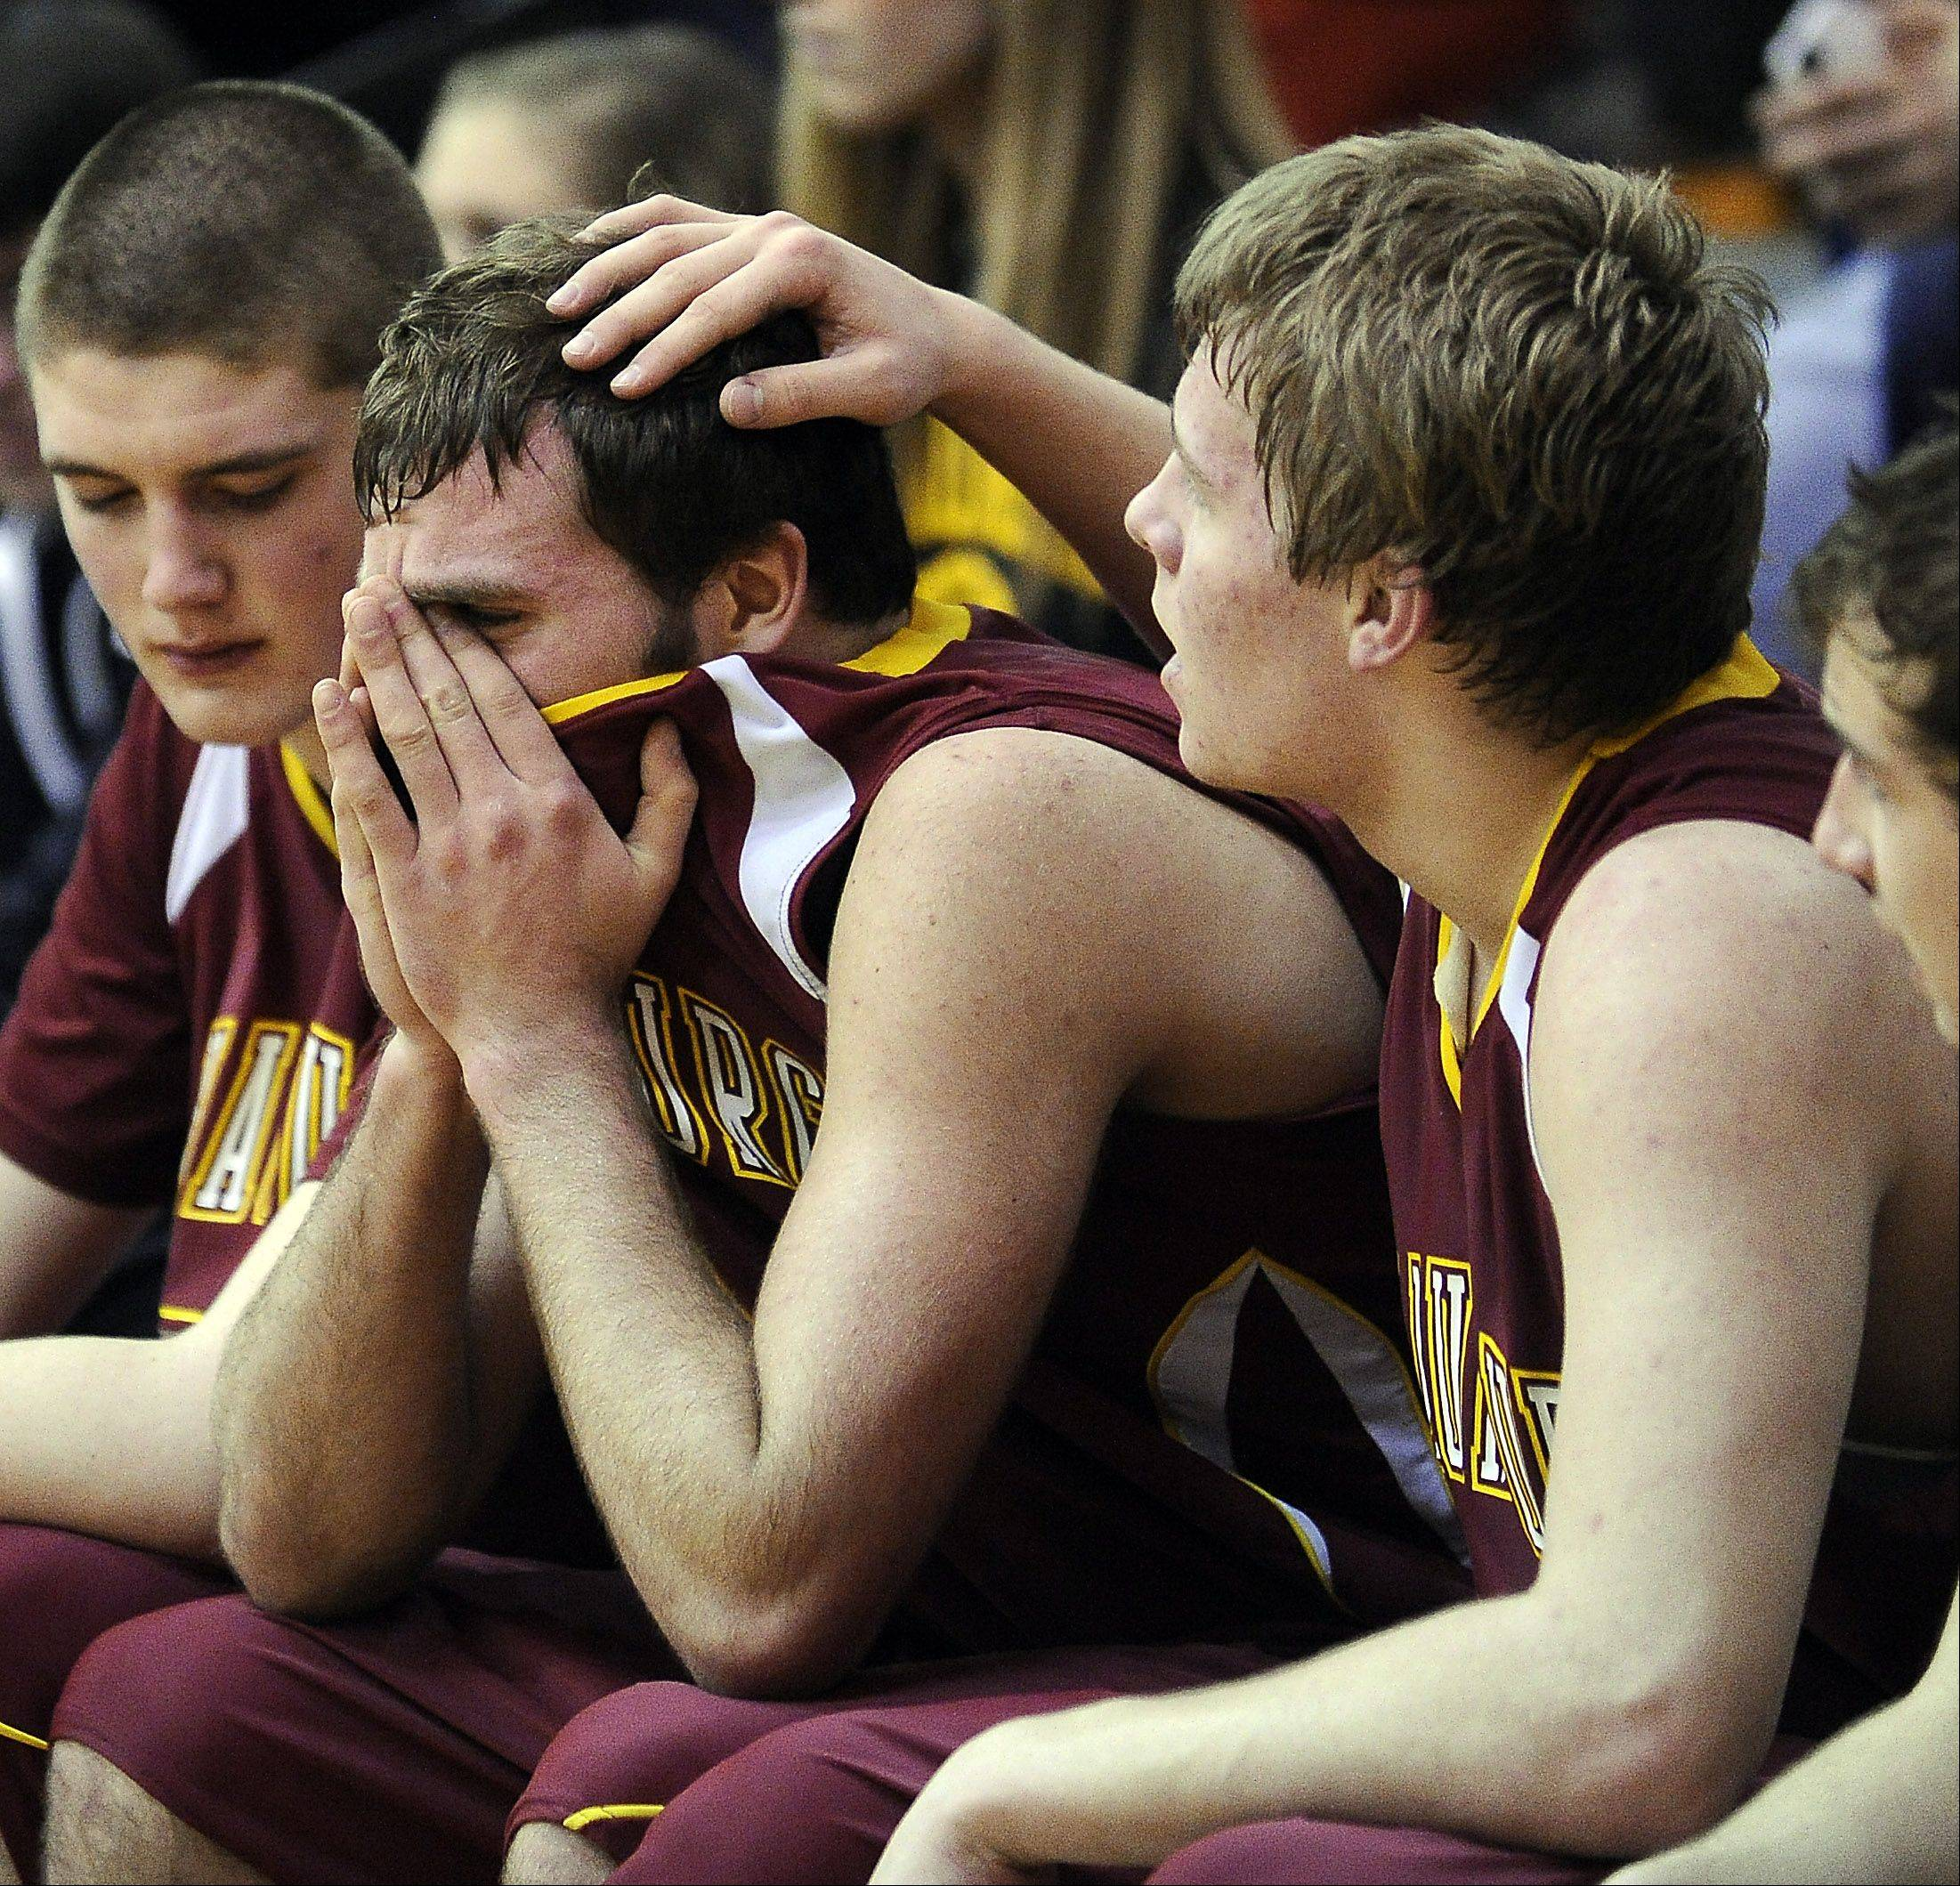 Schaumburg's Kyle Bolger comforts Christian Spandiary as their season comes to a conclusion.